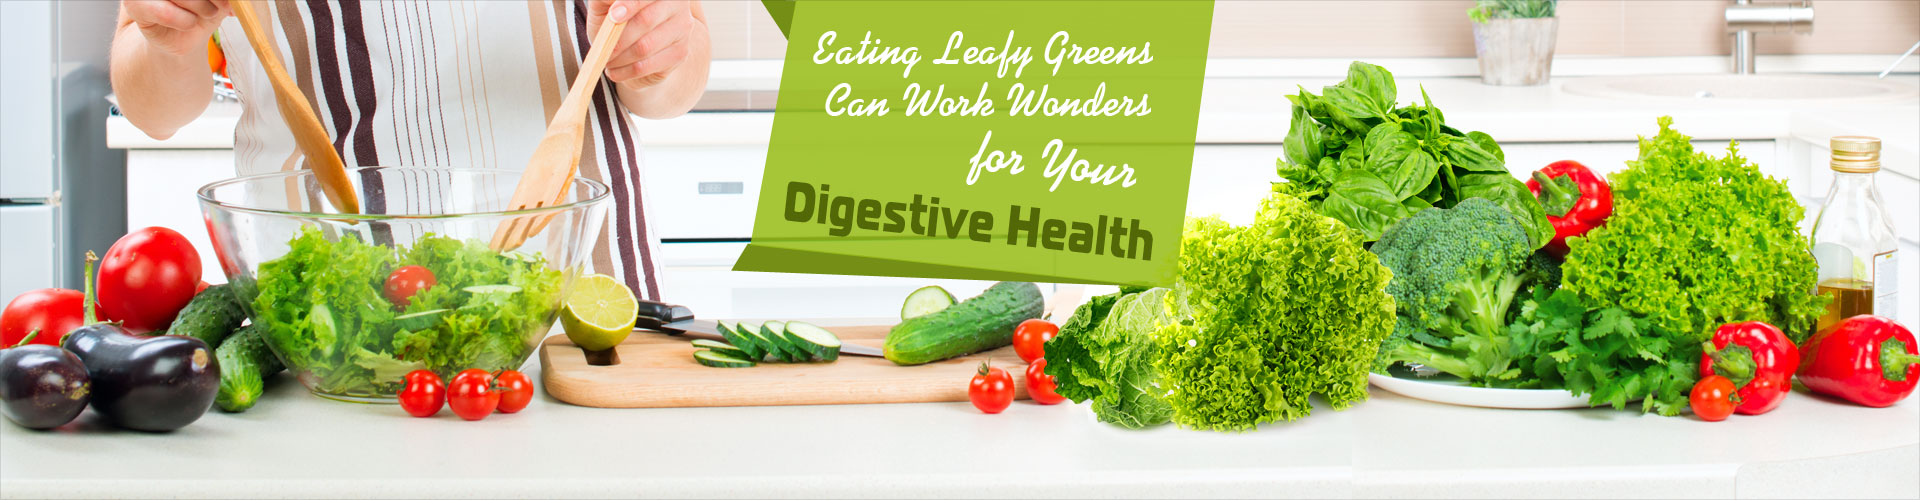 Top 10 Tips for Good Digestive Health